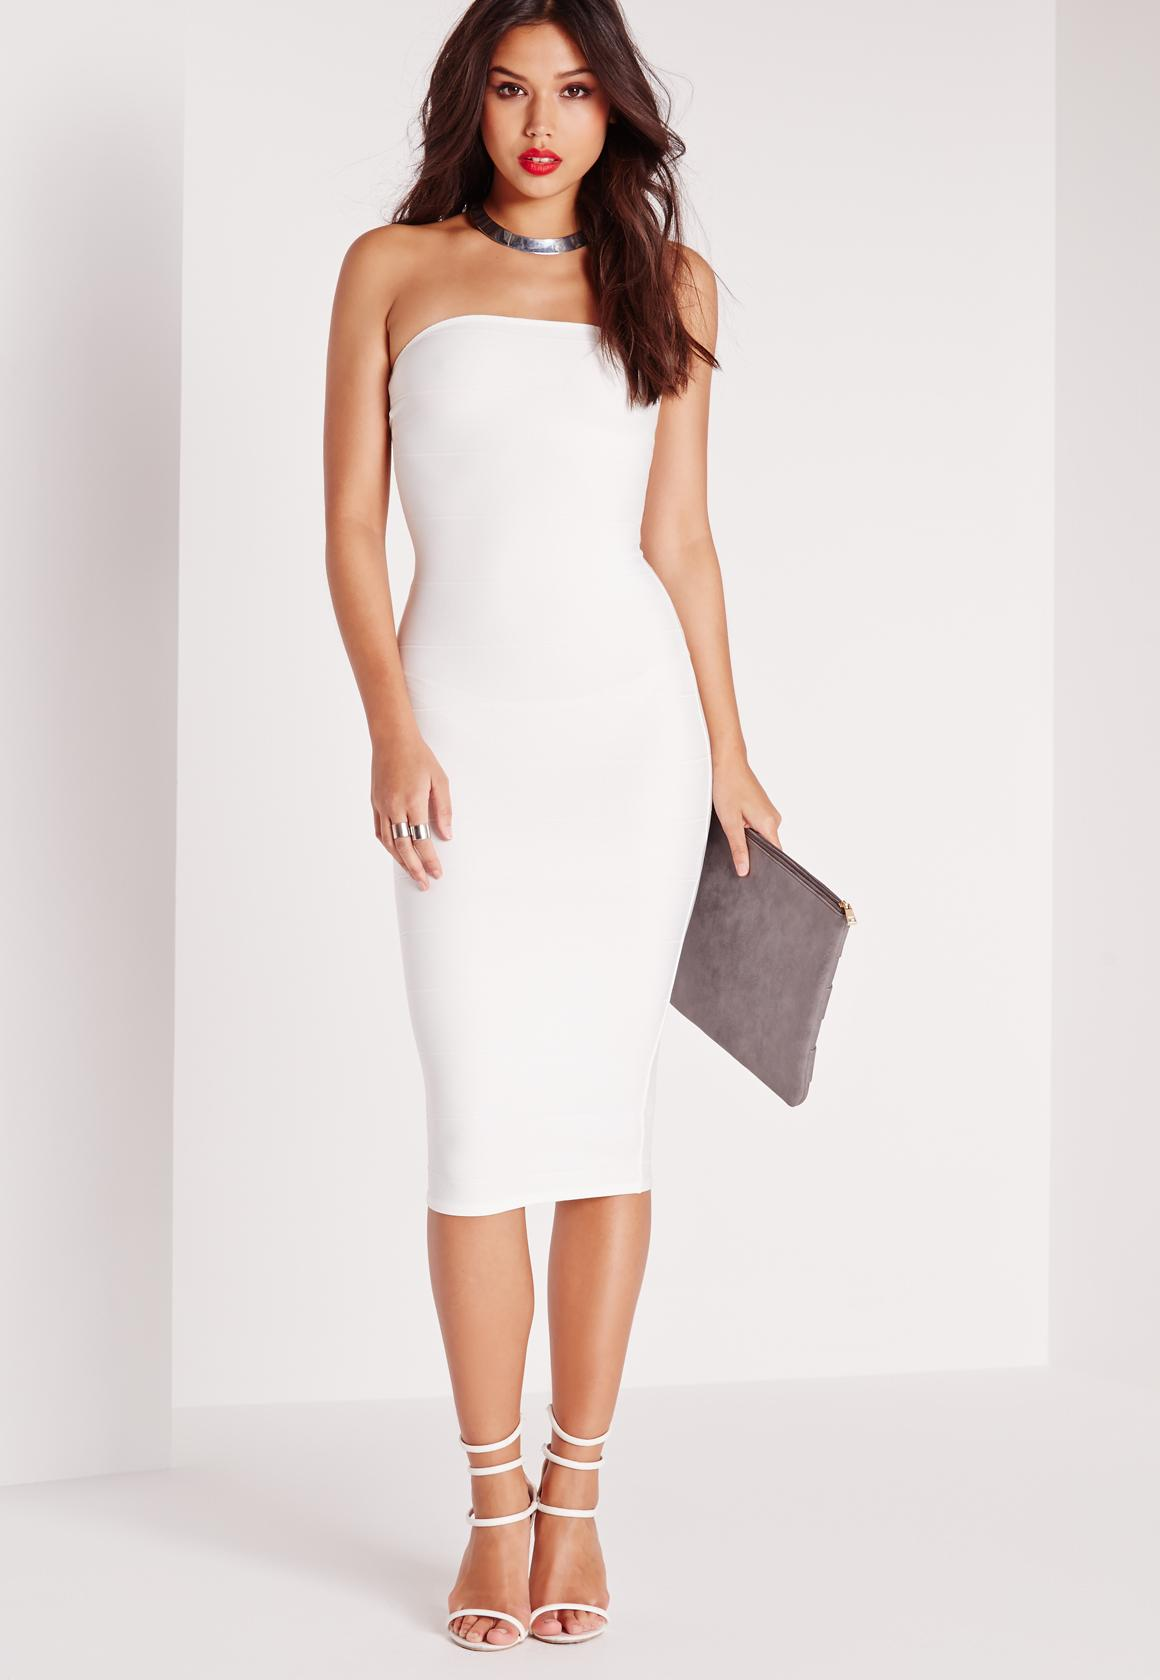 Cheap Visit New Free Shipping 2018 Missguided Strapless Bodycon Midi Dress Get Authentic For Sale Discount Popular Clearance Websites IbsSyqX